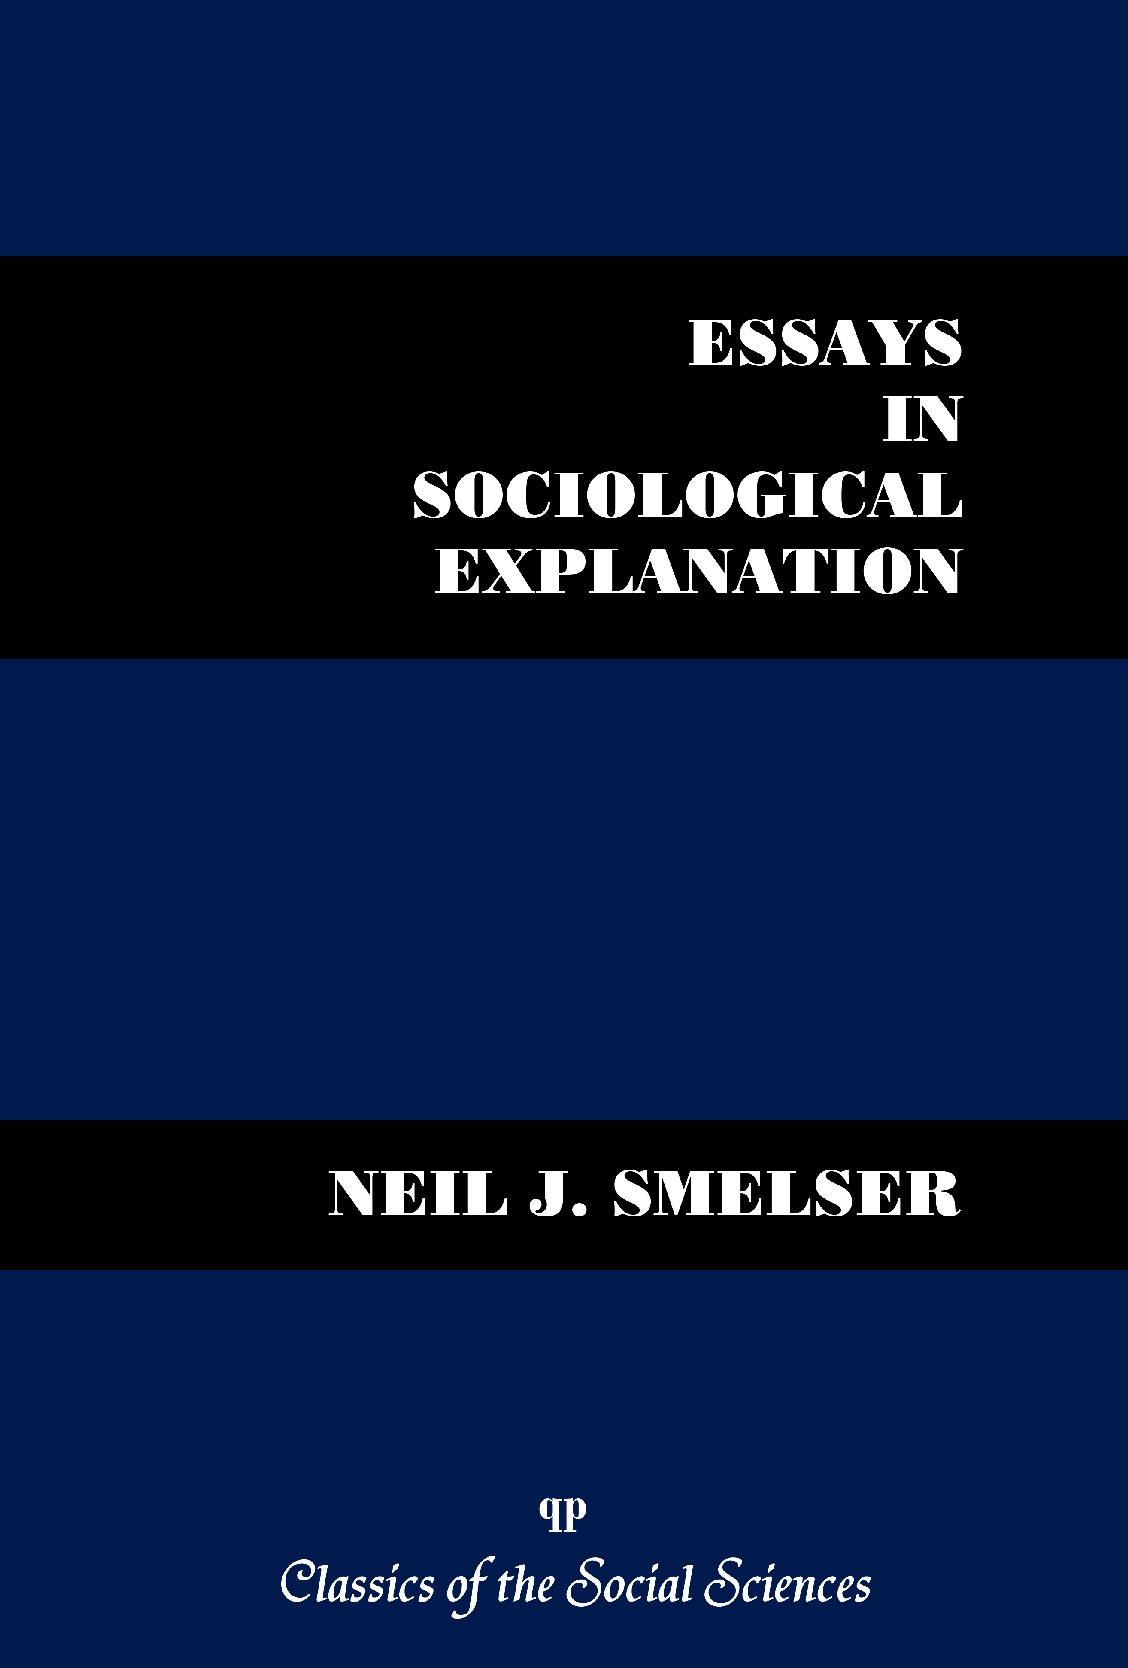 From Max Weber - Paperback - Max Weber - Oxford University Press